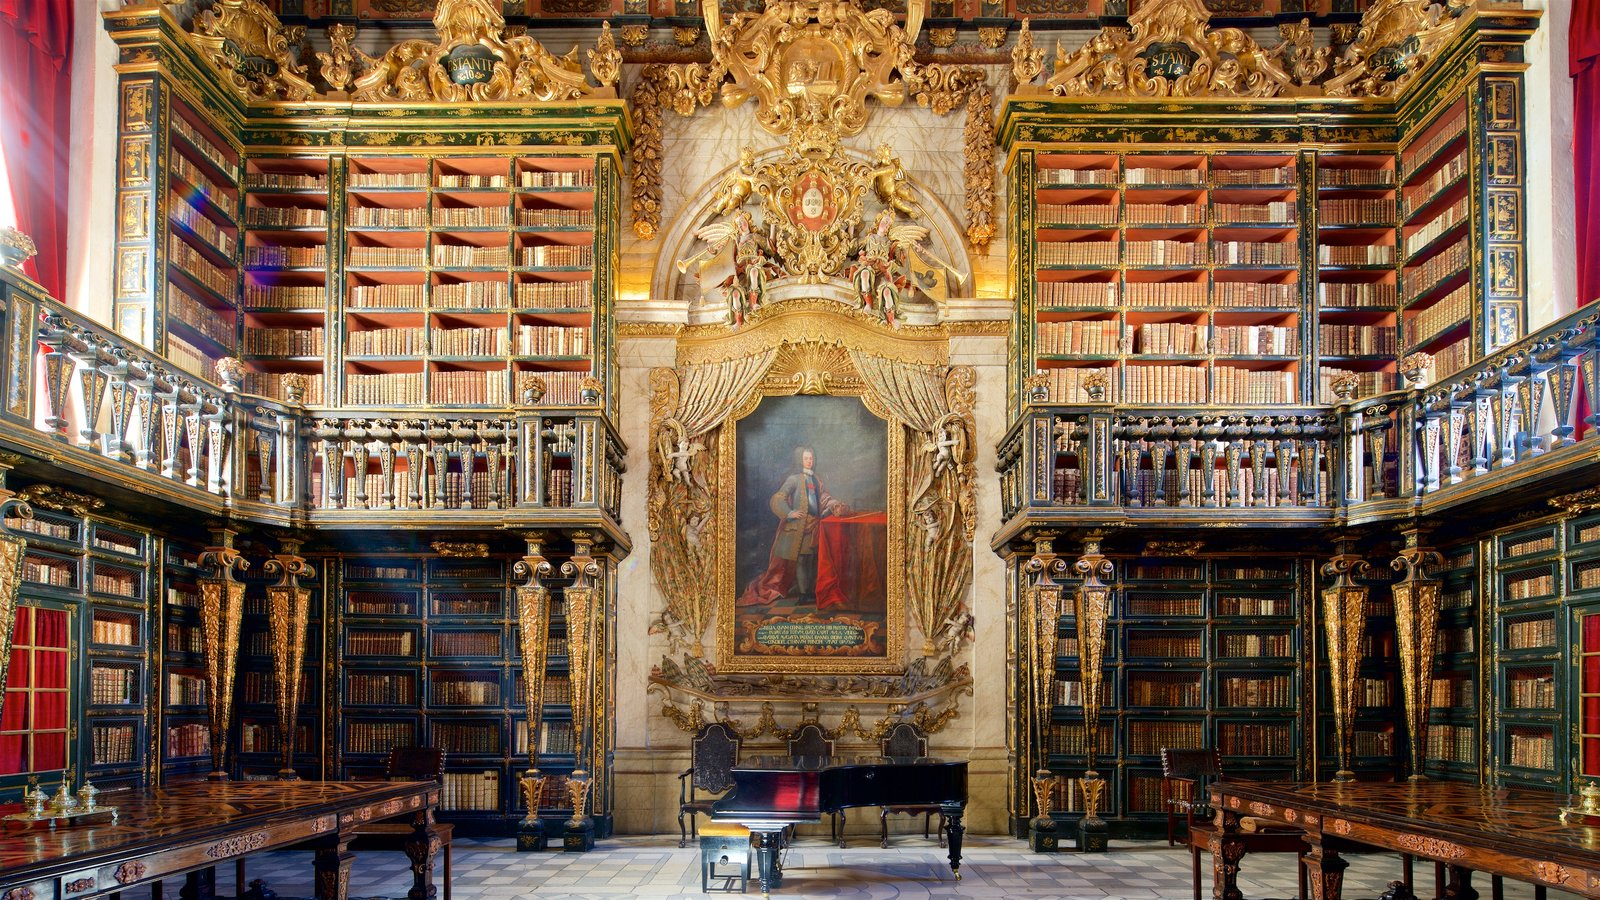 WEBINAR SERIES: DSpace Repositories During the COVID-19 Pandemic—World Heritage Digital Libraries at University of Coimbra